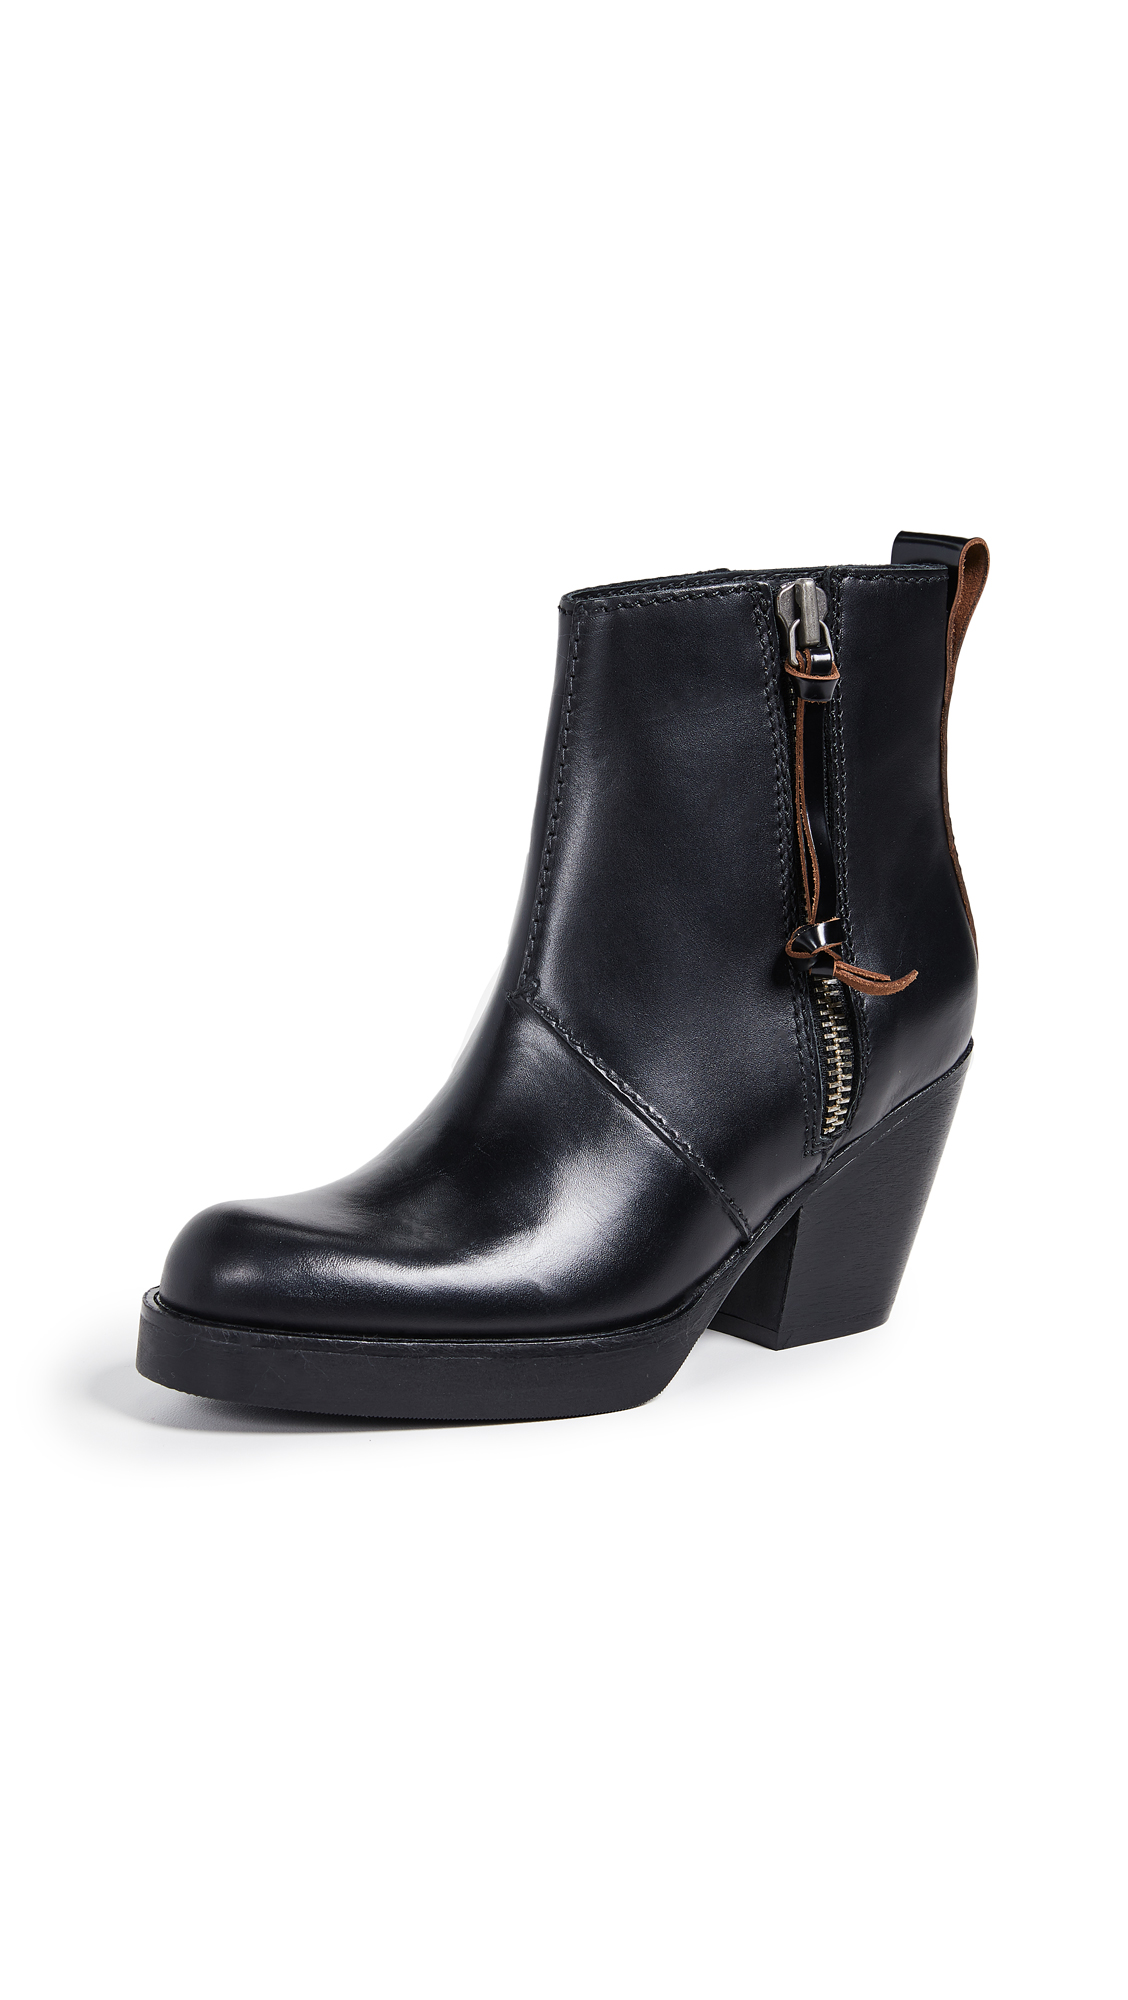 Acne Studios Pistol Booties - Black